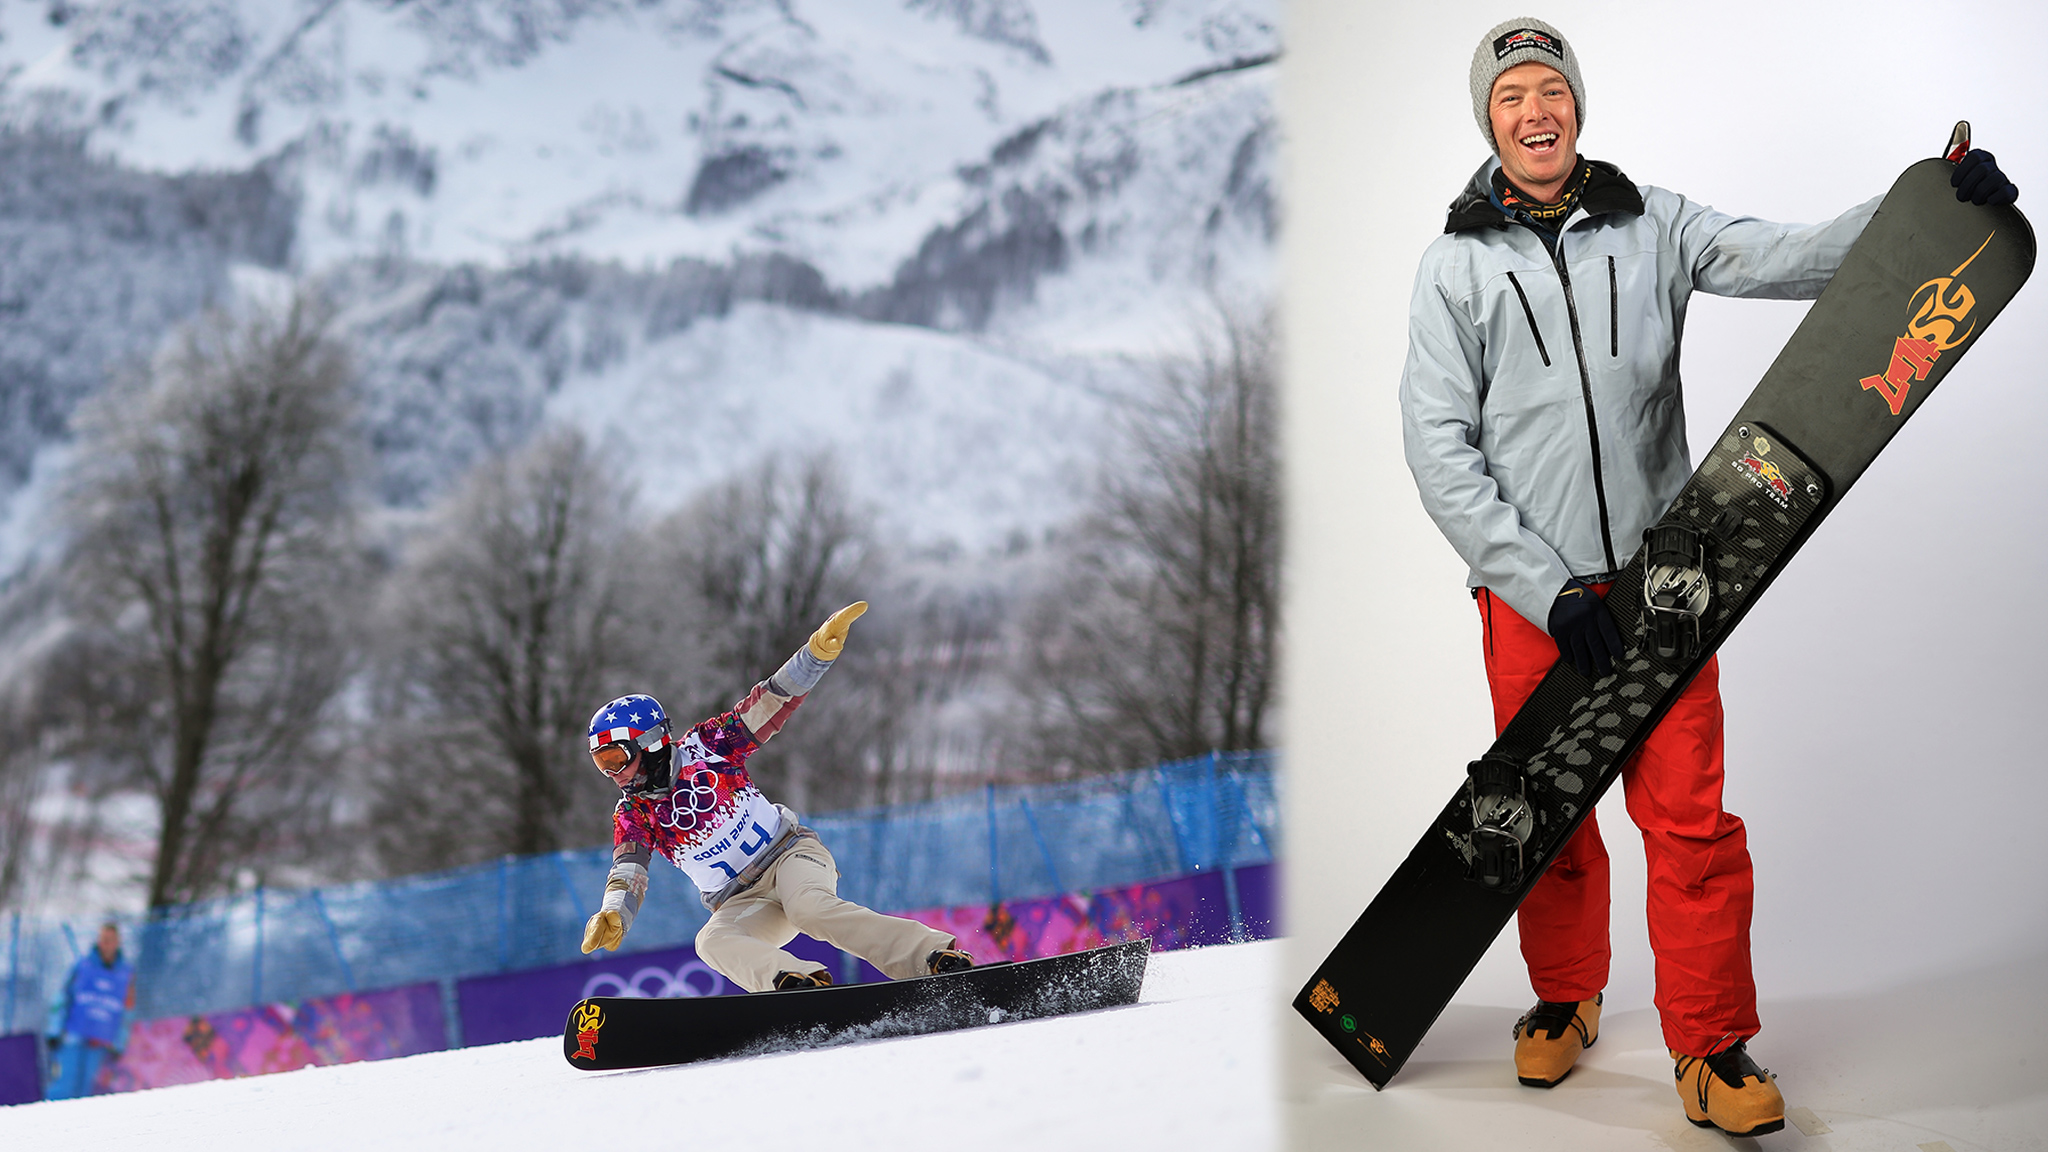 Reiter is the lone member of the U.S. Olympic alpine snowboard team.